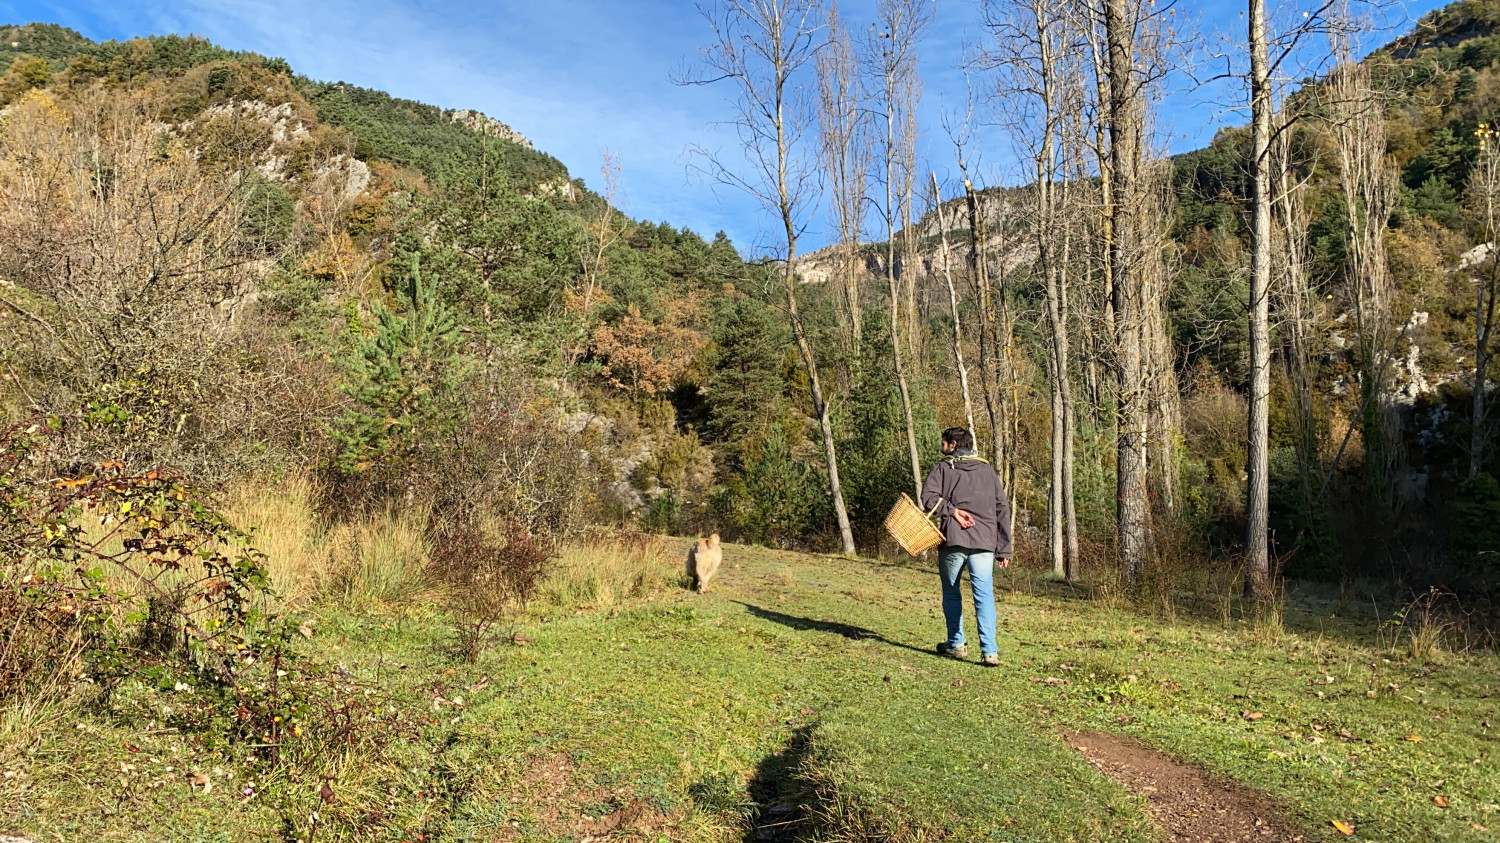 Aniol mushroom hunting in the Pyrenees with his faithful dog Whiskey (by Alan Ruiz Terol)